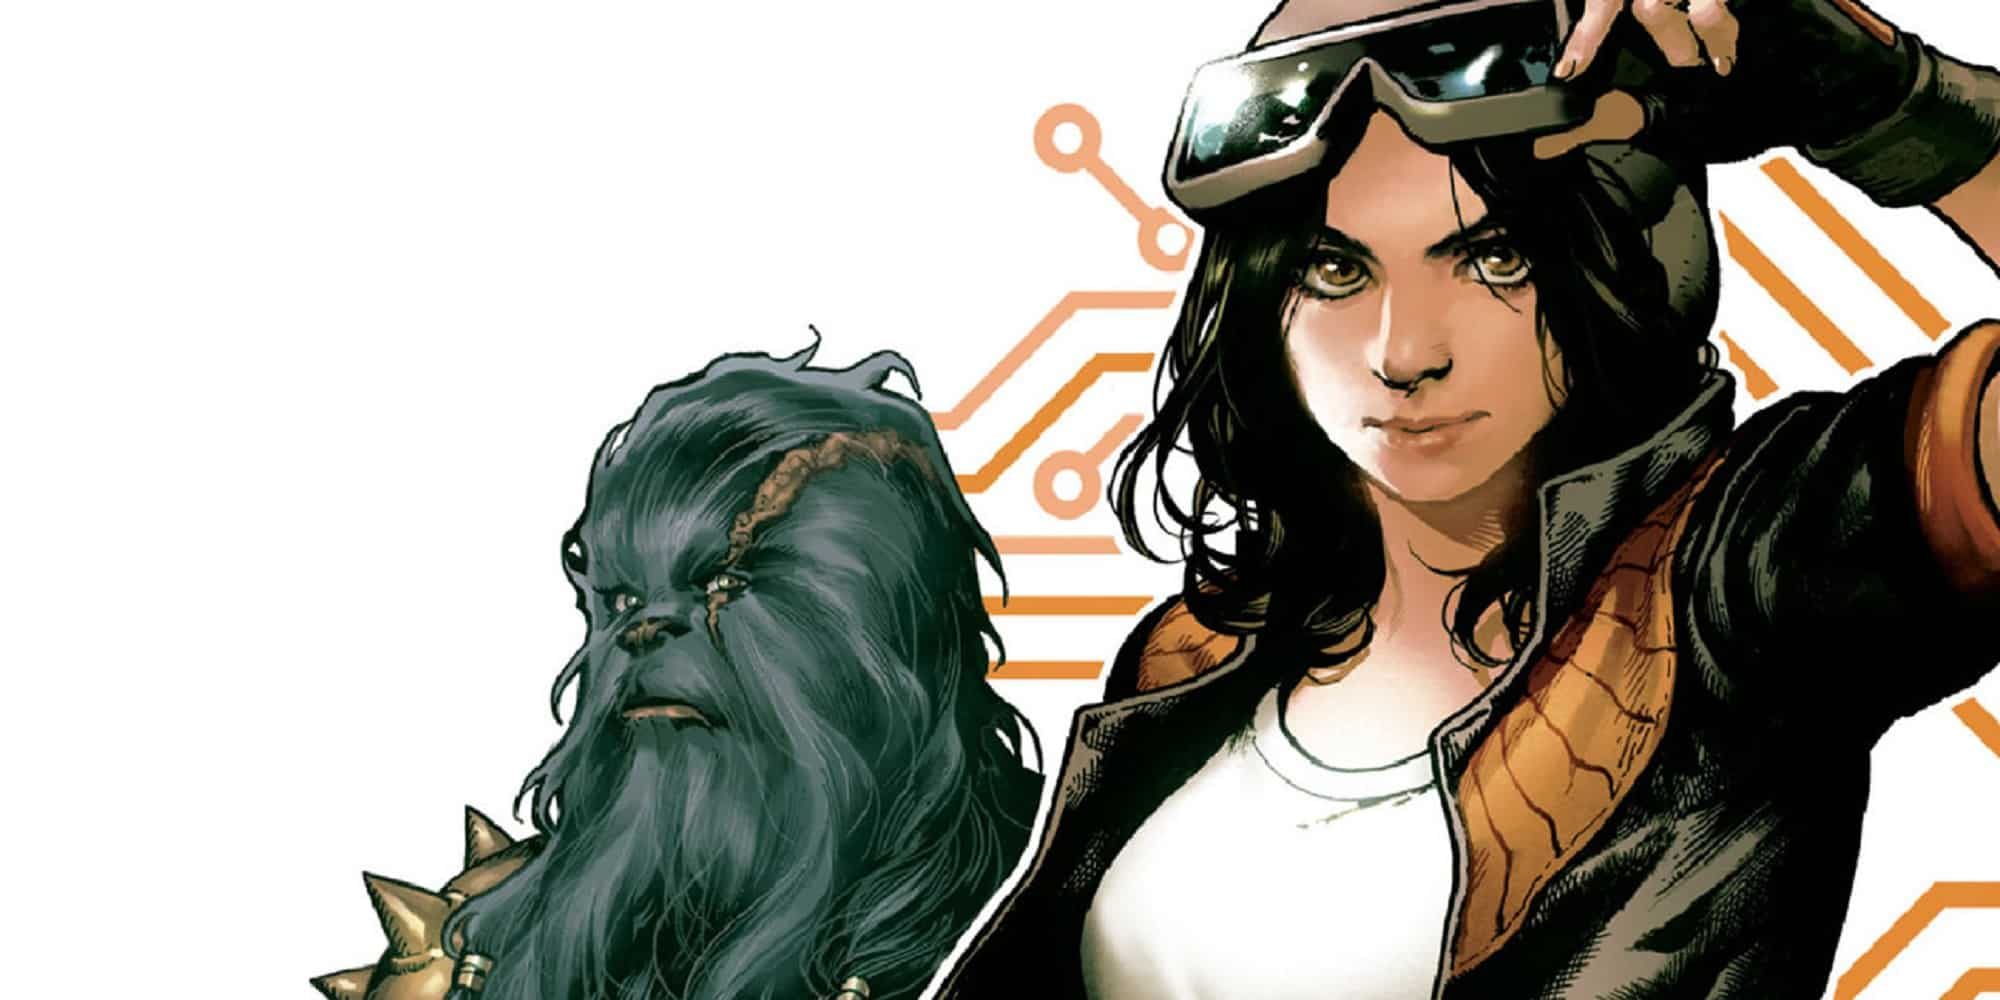 Star Wars Live-action Doctor Aphra Series Featured